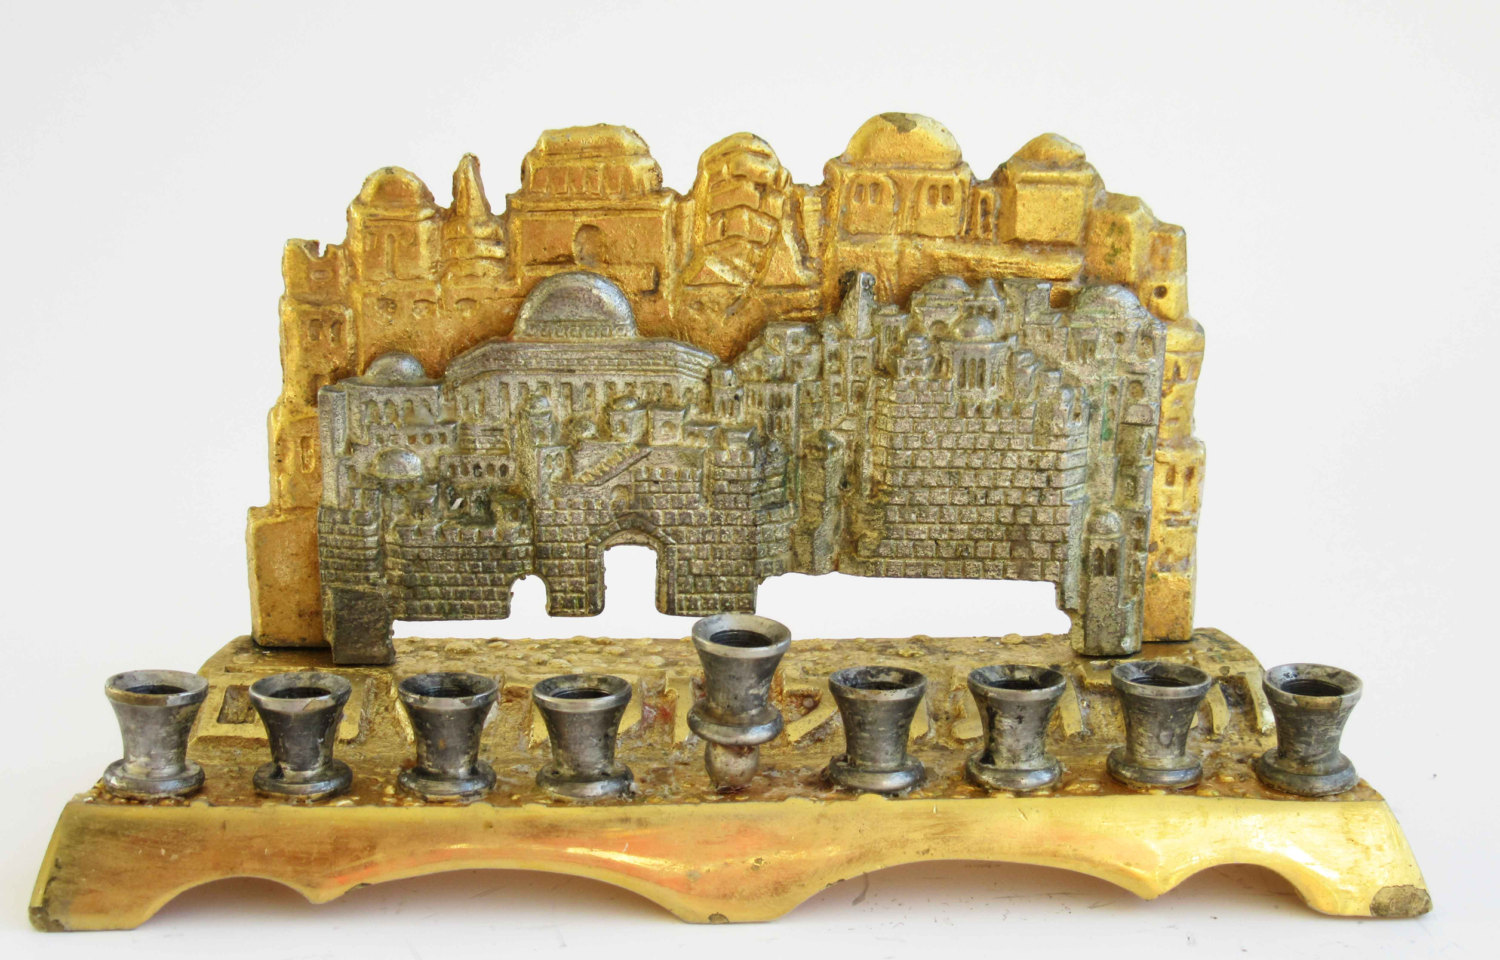 RX_1706_Vintage Menorahs_Two-Toned Jerusalem Menorah